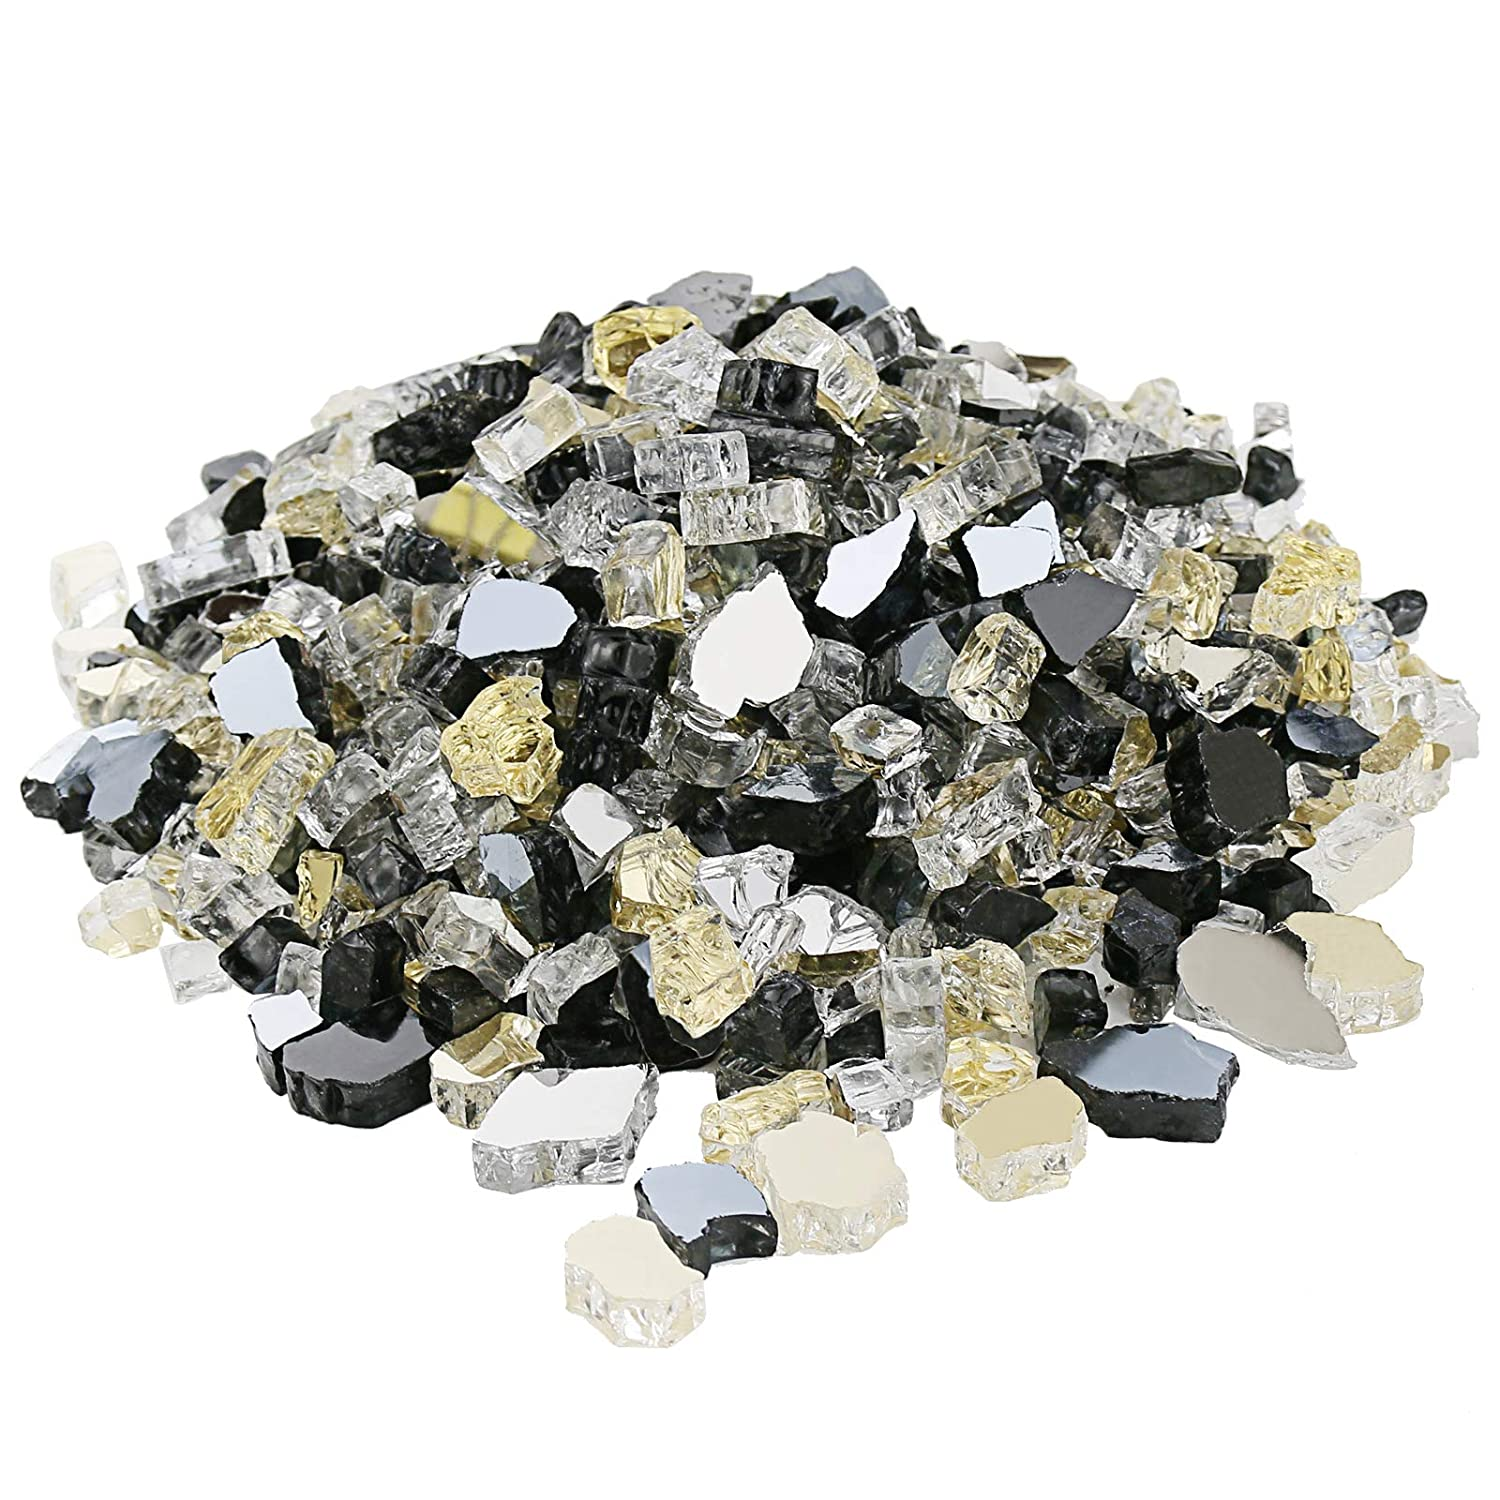 Hisencn Blended Fire Glass for Fire Pit, 10 Pound, 1/2 Inch Tempered Glass Rocks for Natural or Propane Gas Fireplace, Indoor & Outdoor Fire Bowls, Landscape Onyx Black, Platinum, Gold Reflective